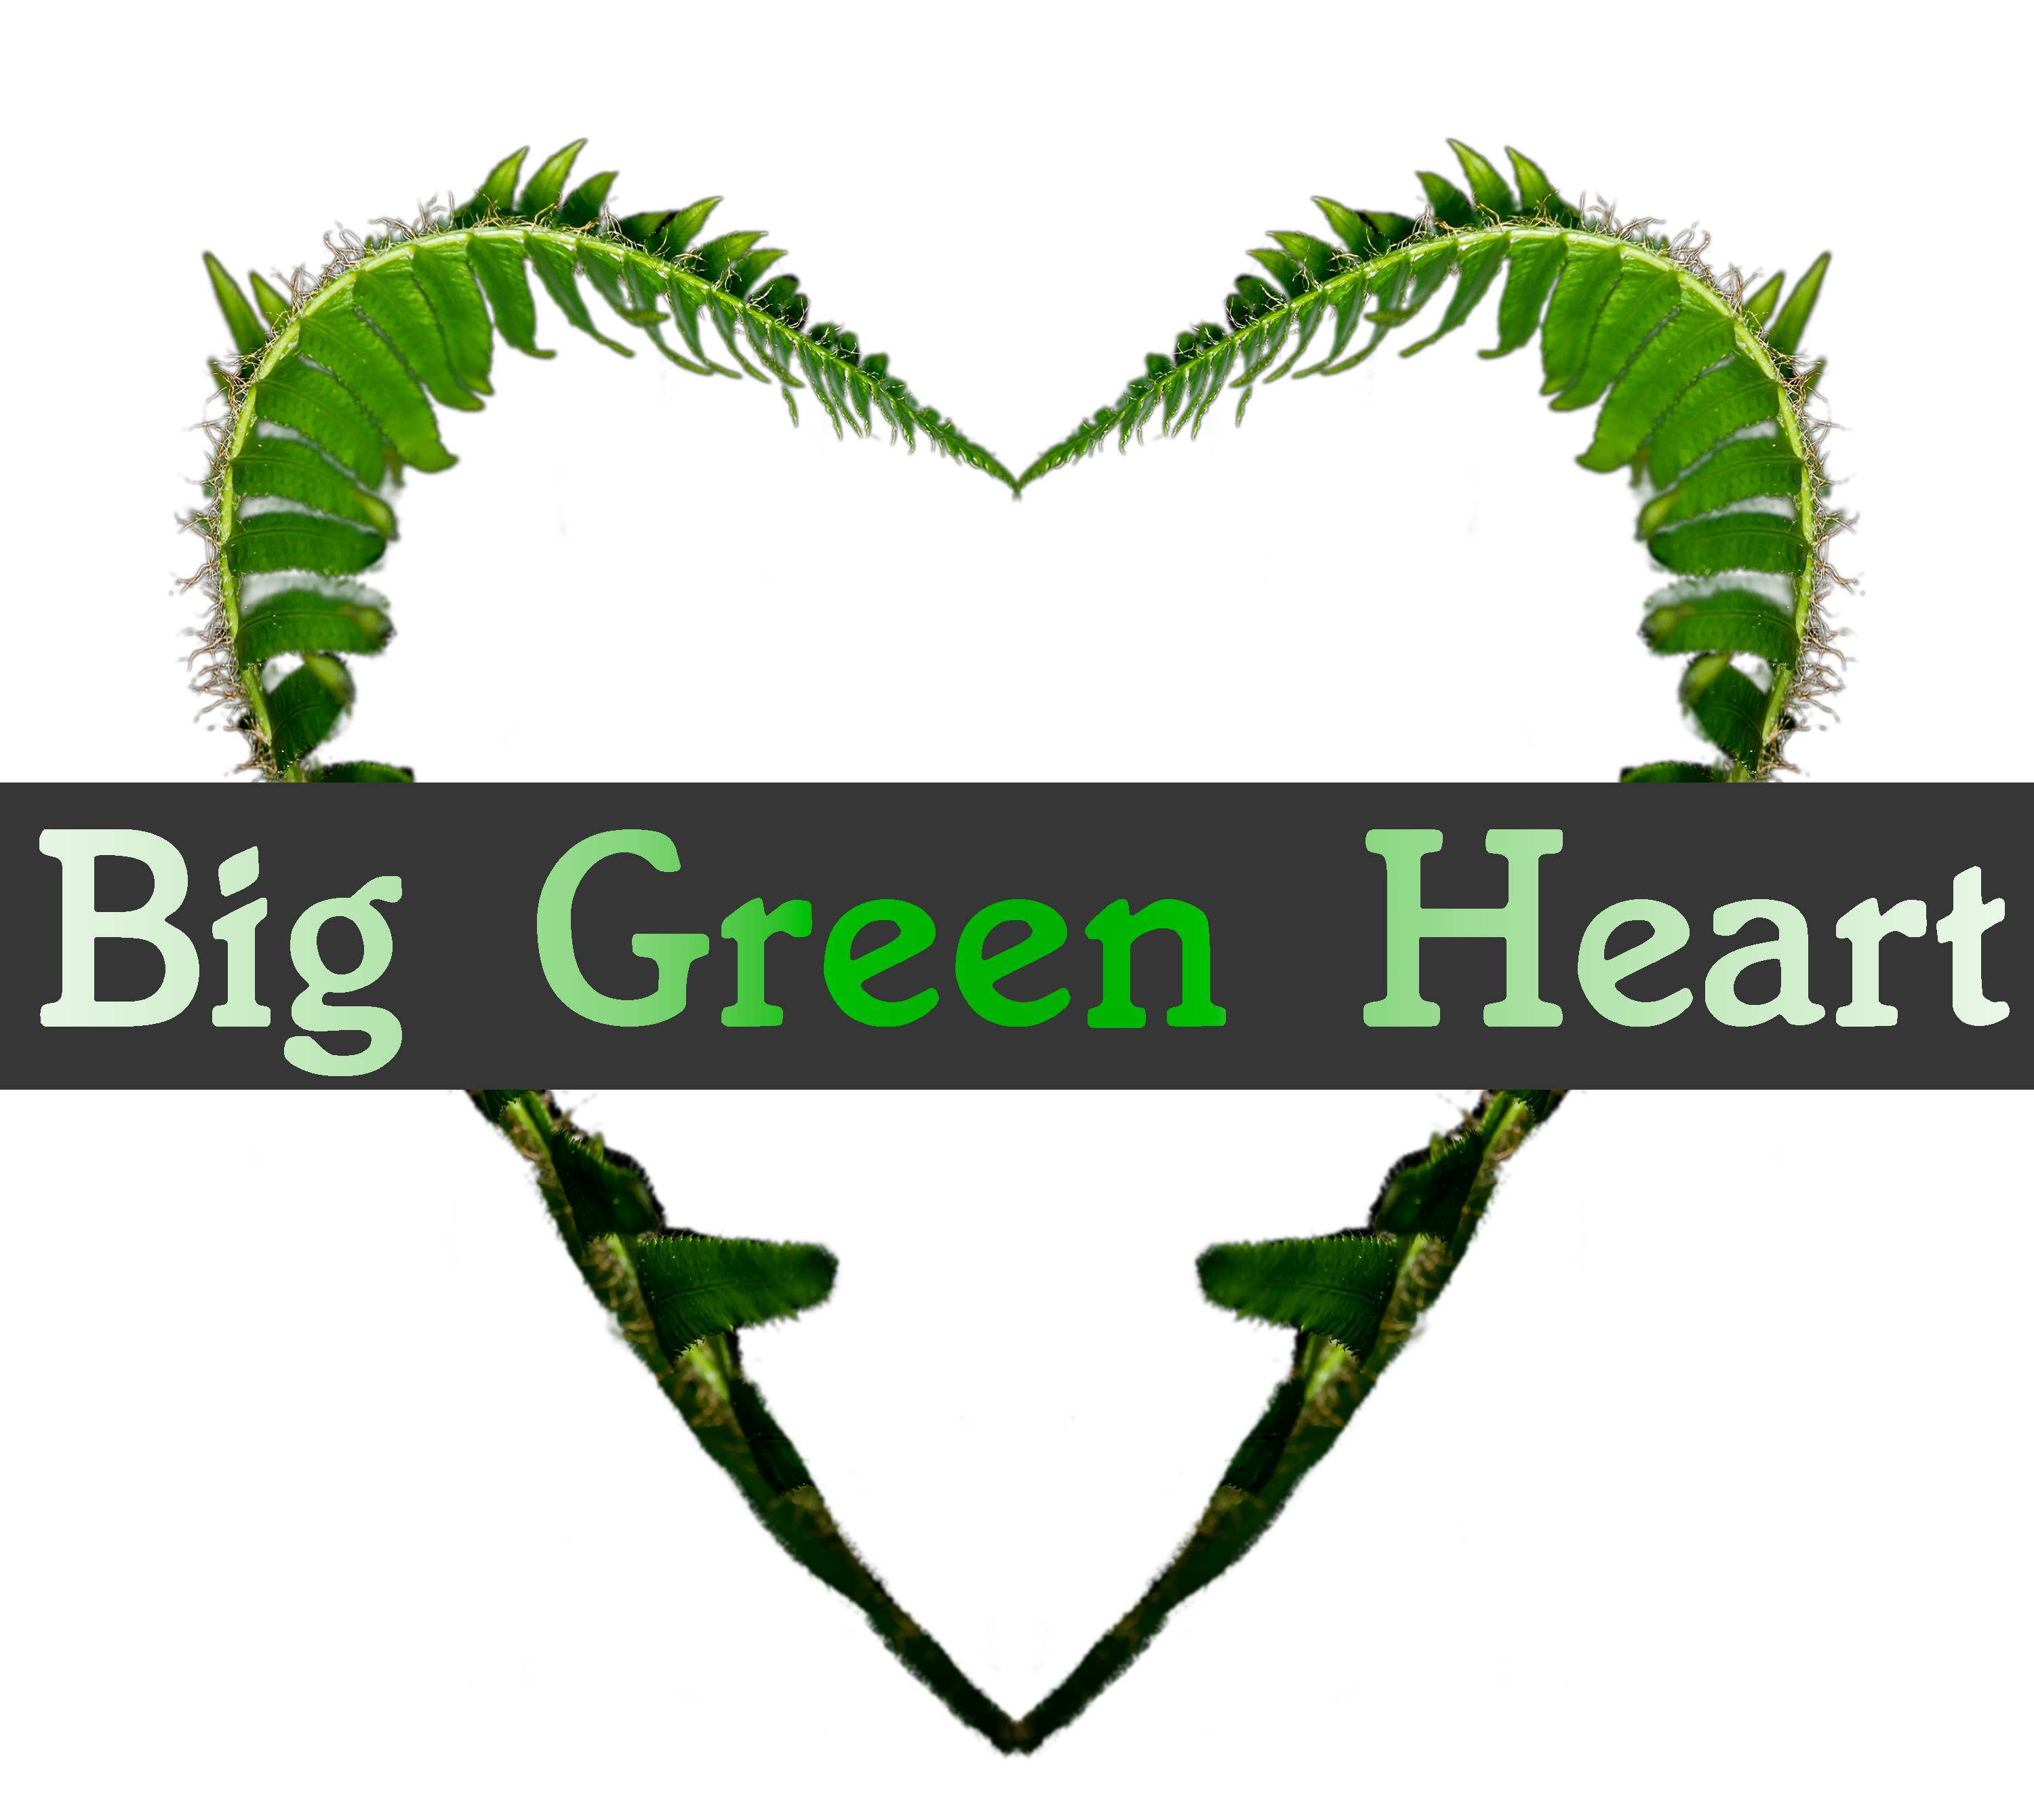 Big Green Heart